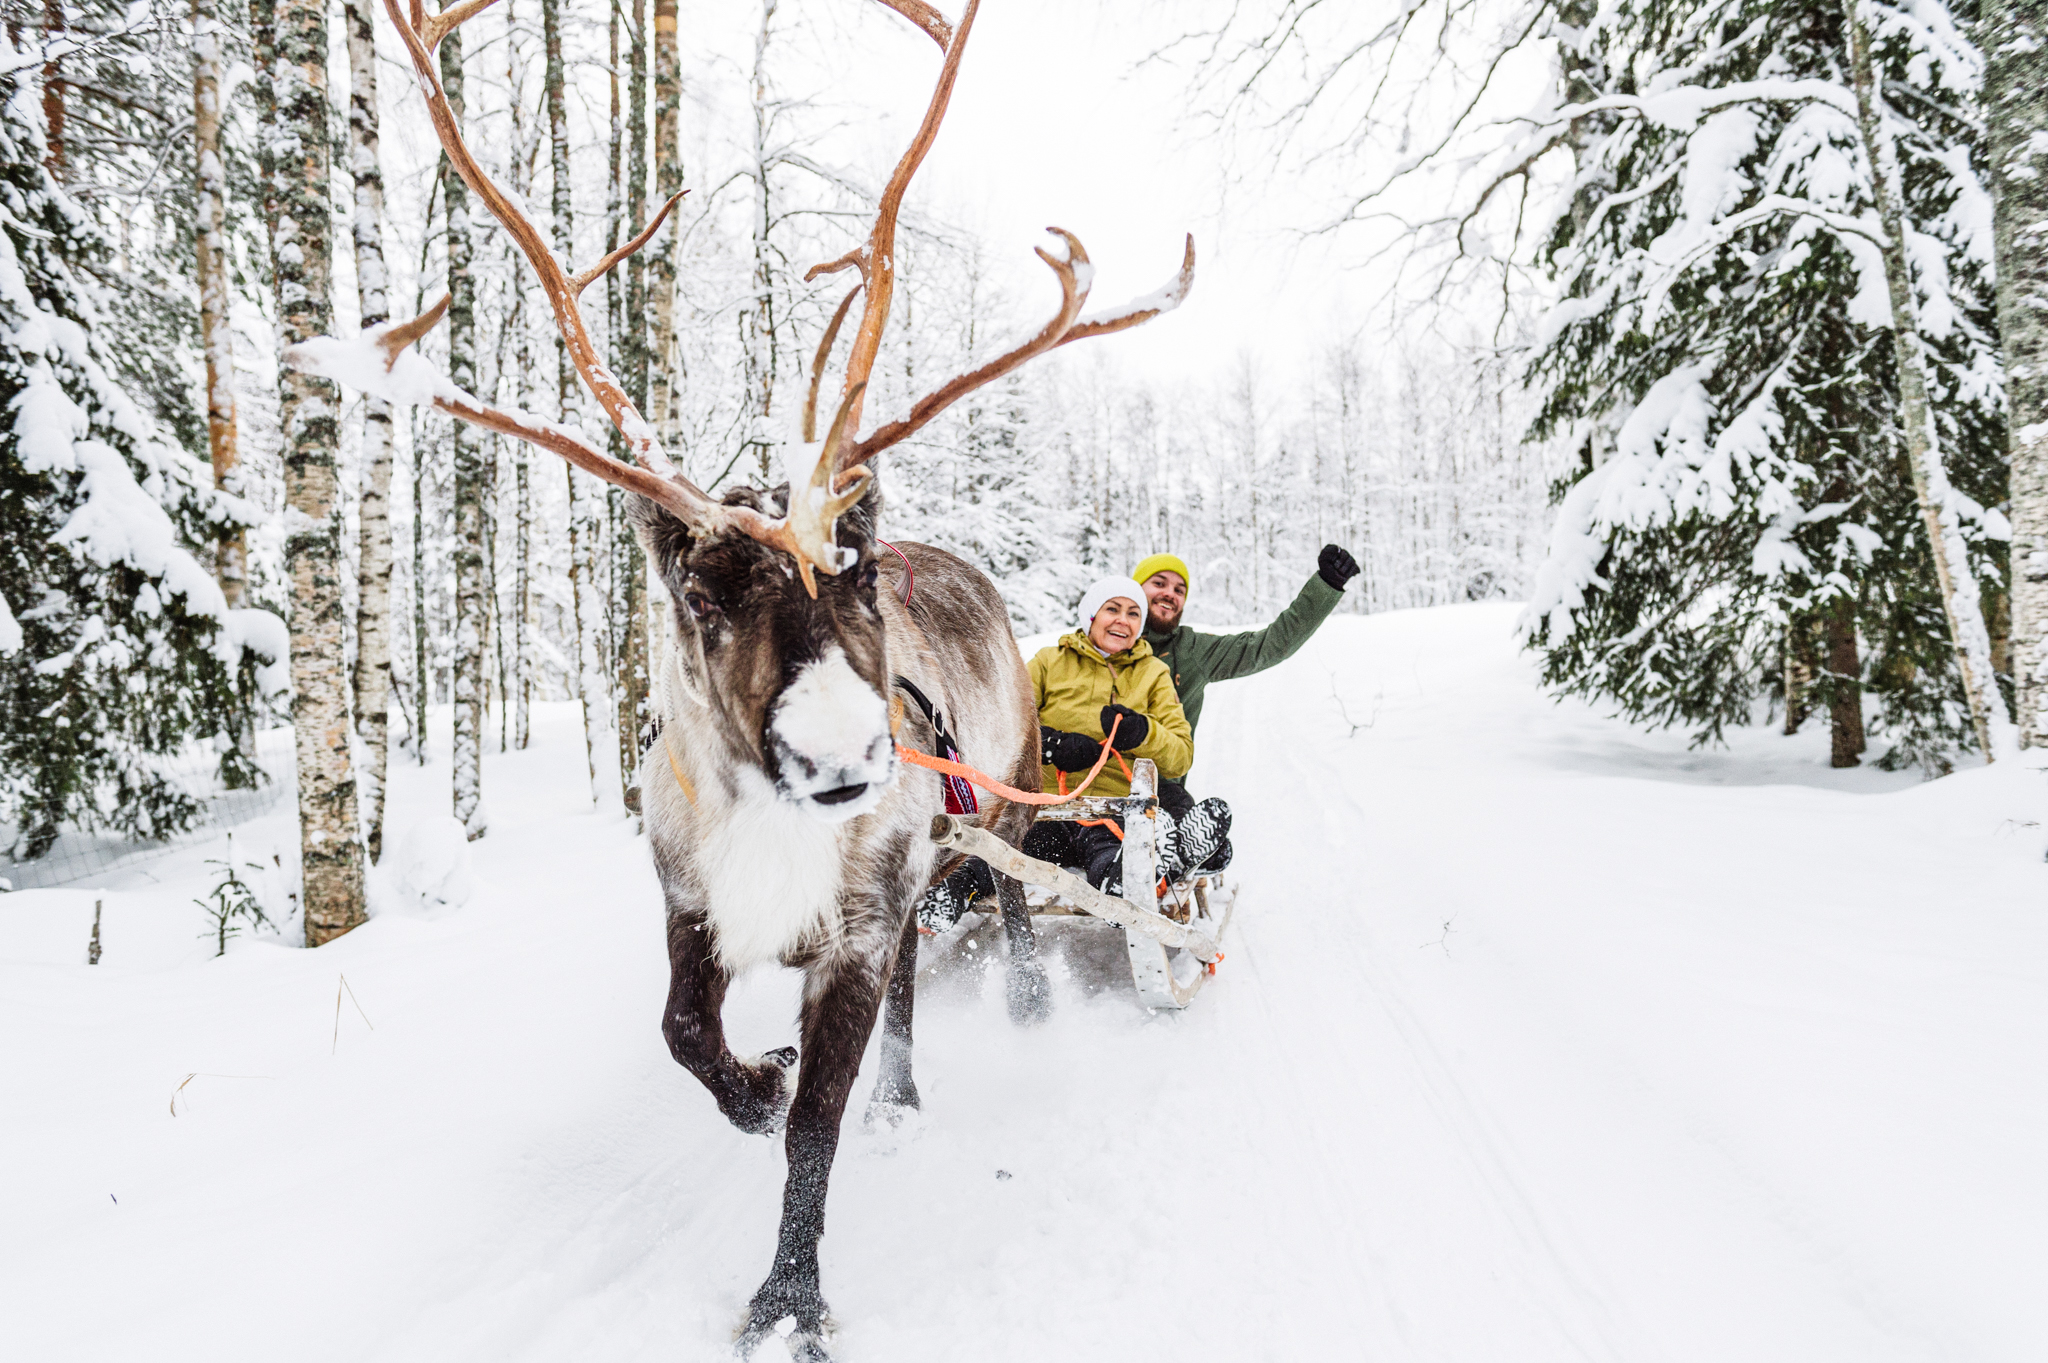 reindeer pulling a sleight with people in snowy forest